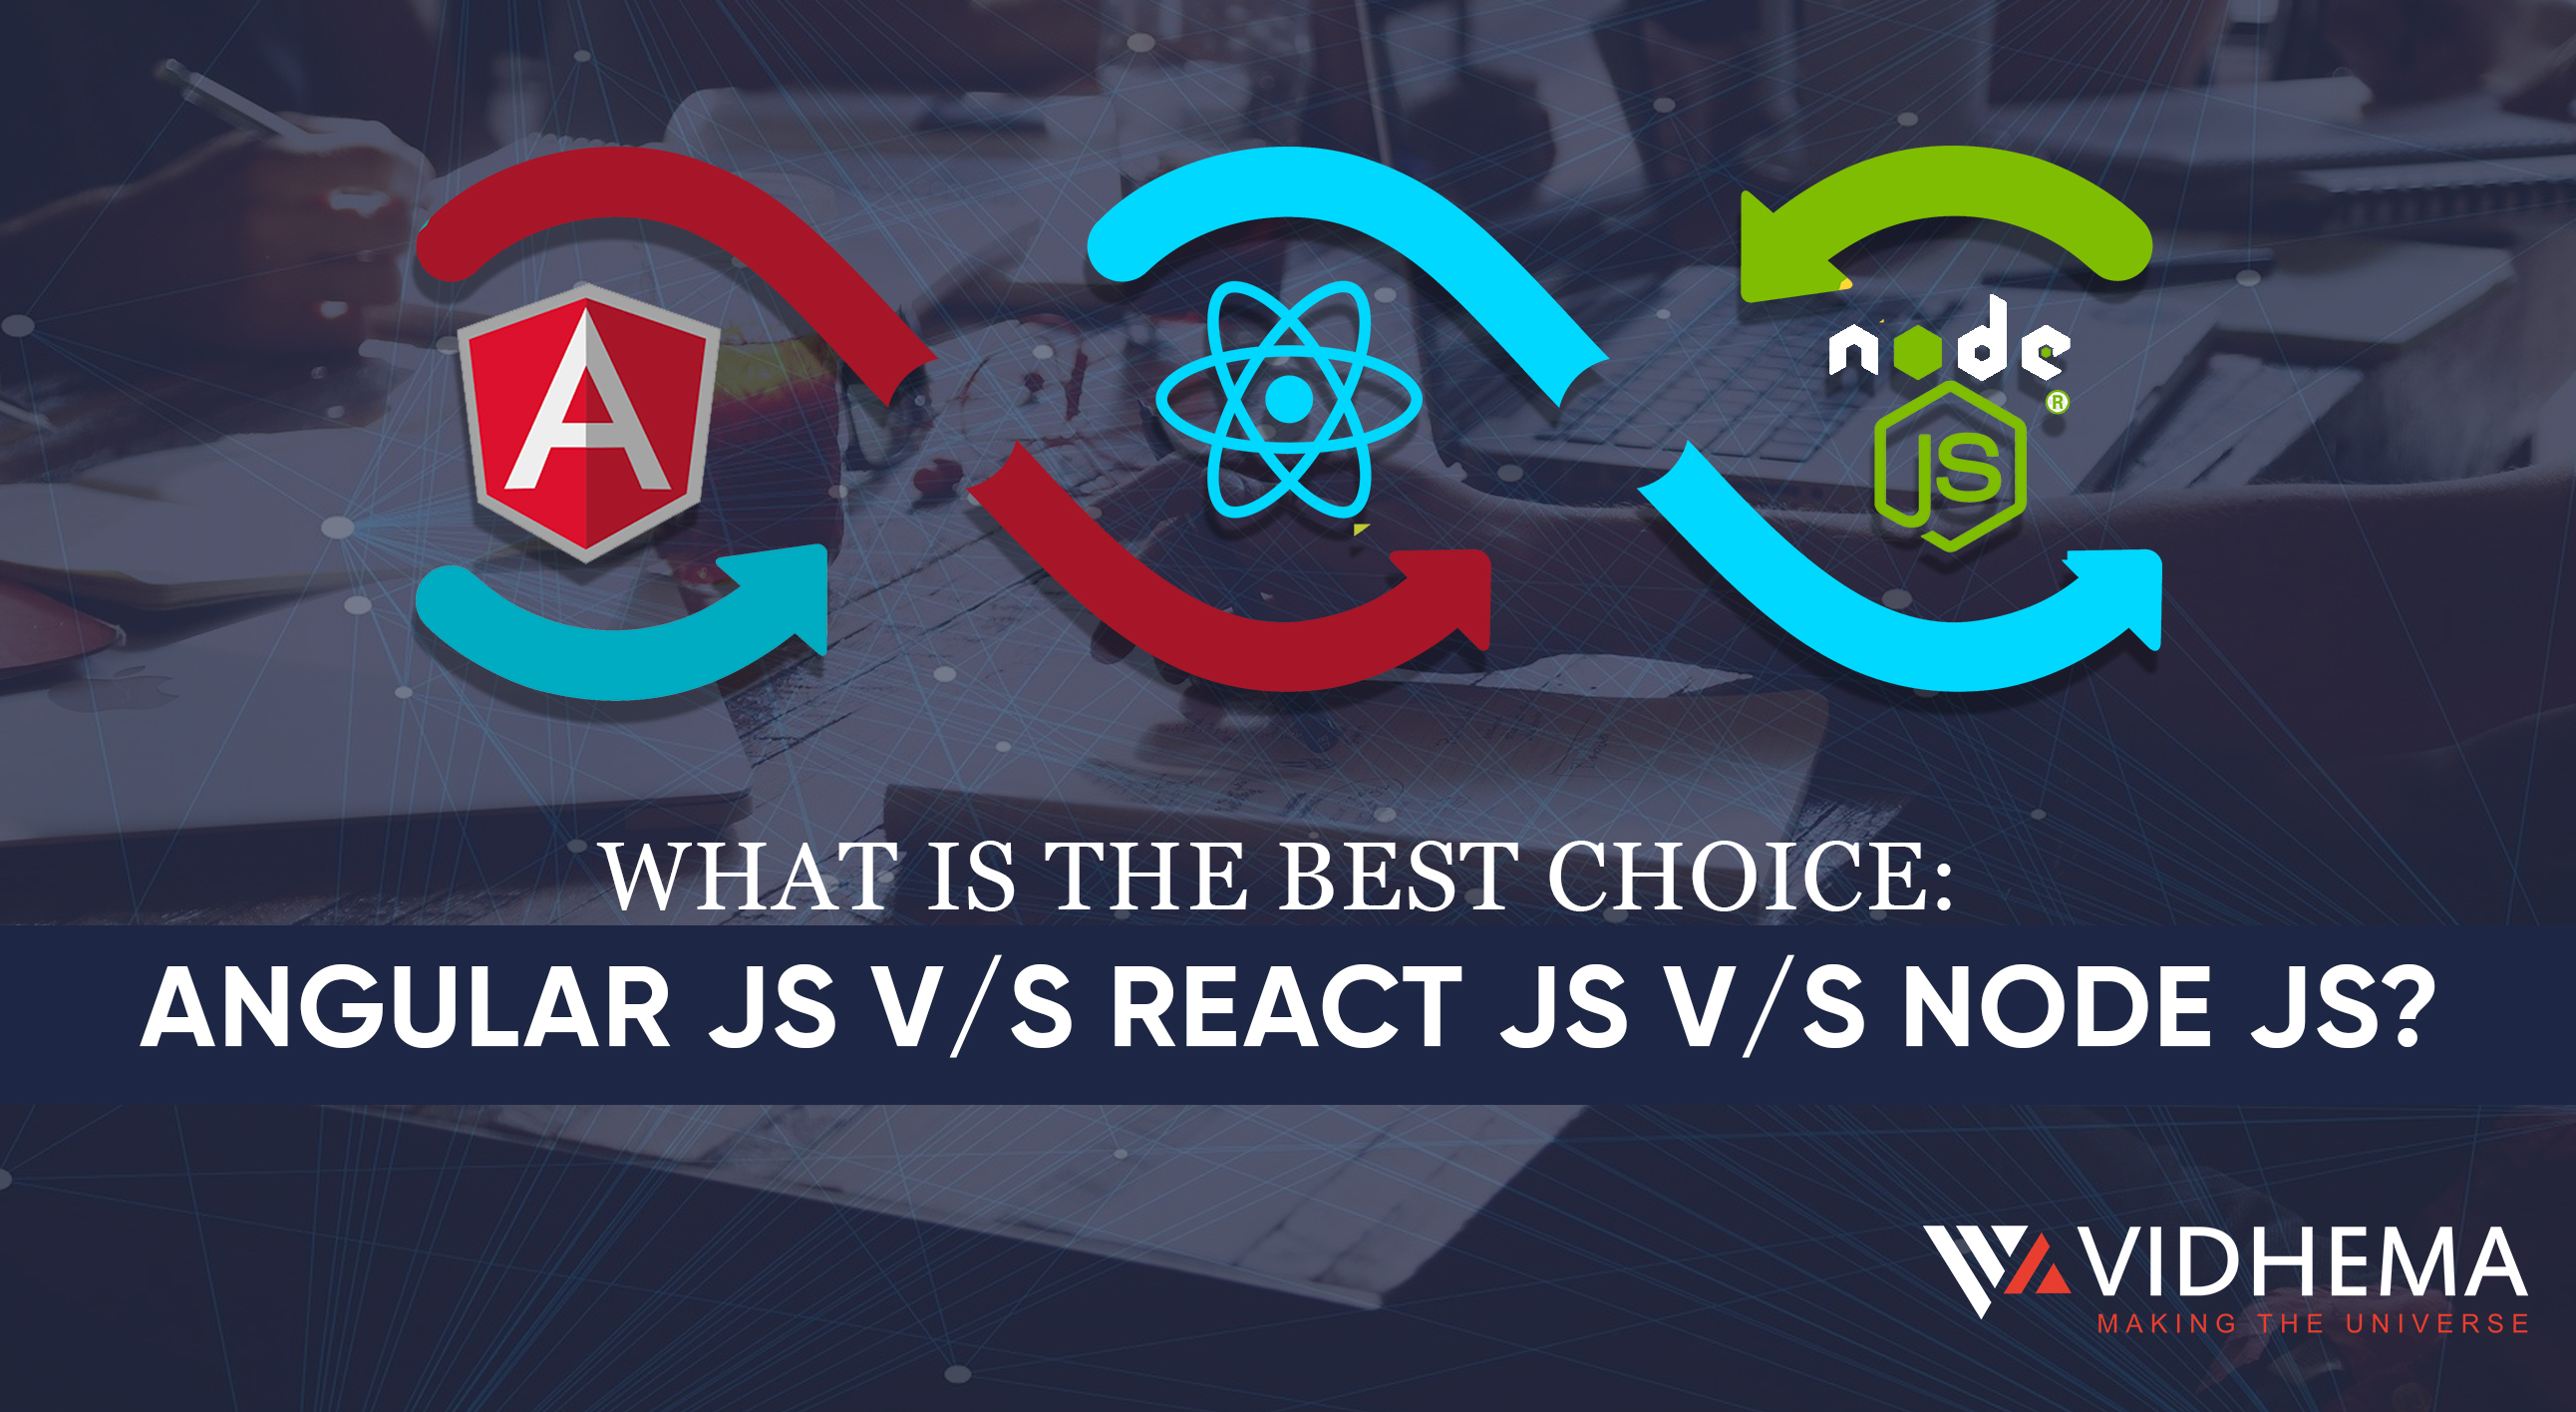 WHAT IS THE BEST CHOICE: ANGULAR JS V/S REACT JS V/S NODE JS?